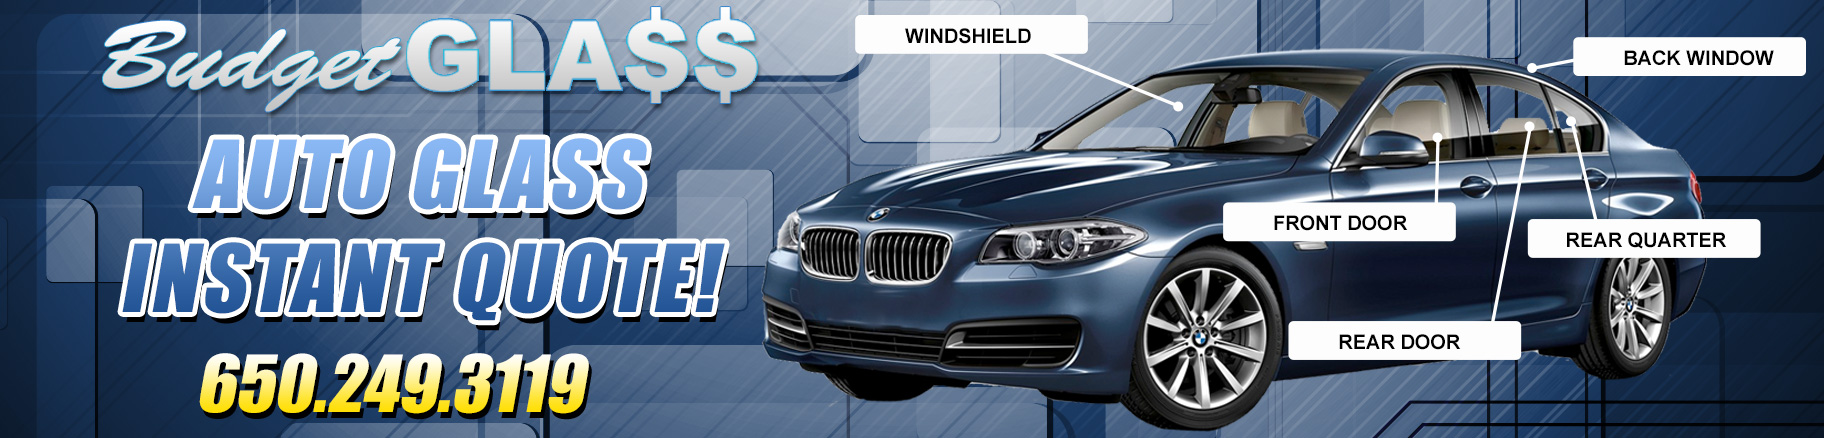 Auto Glass Quote Simple Auto Glass Repair San Carlos  California Windshield Replacement